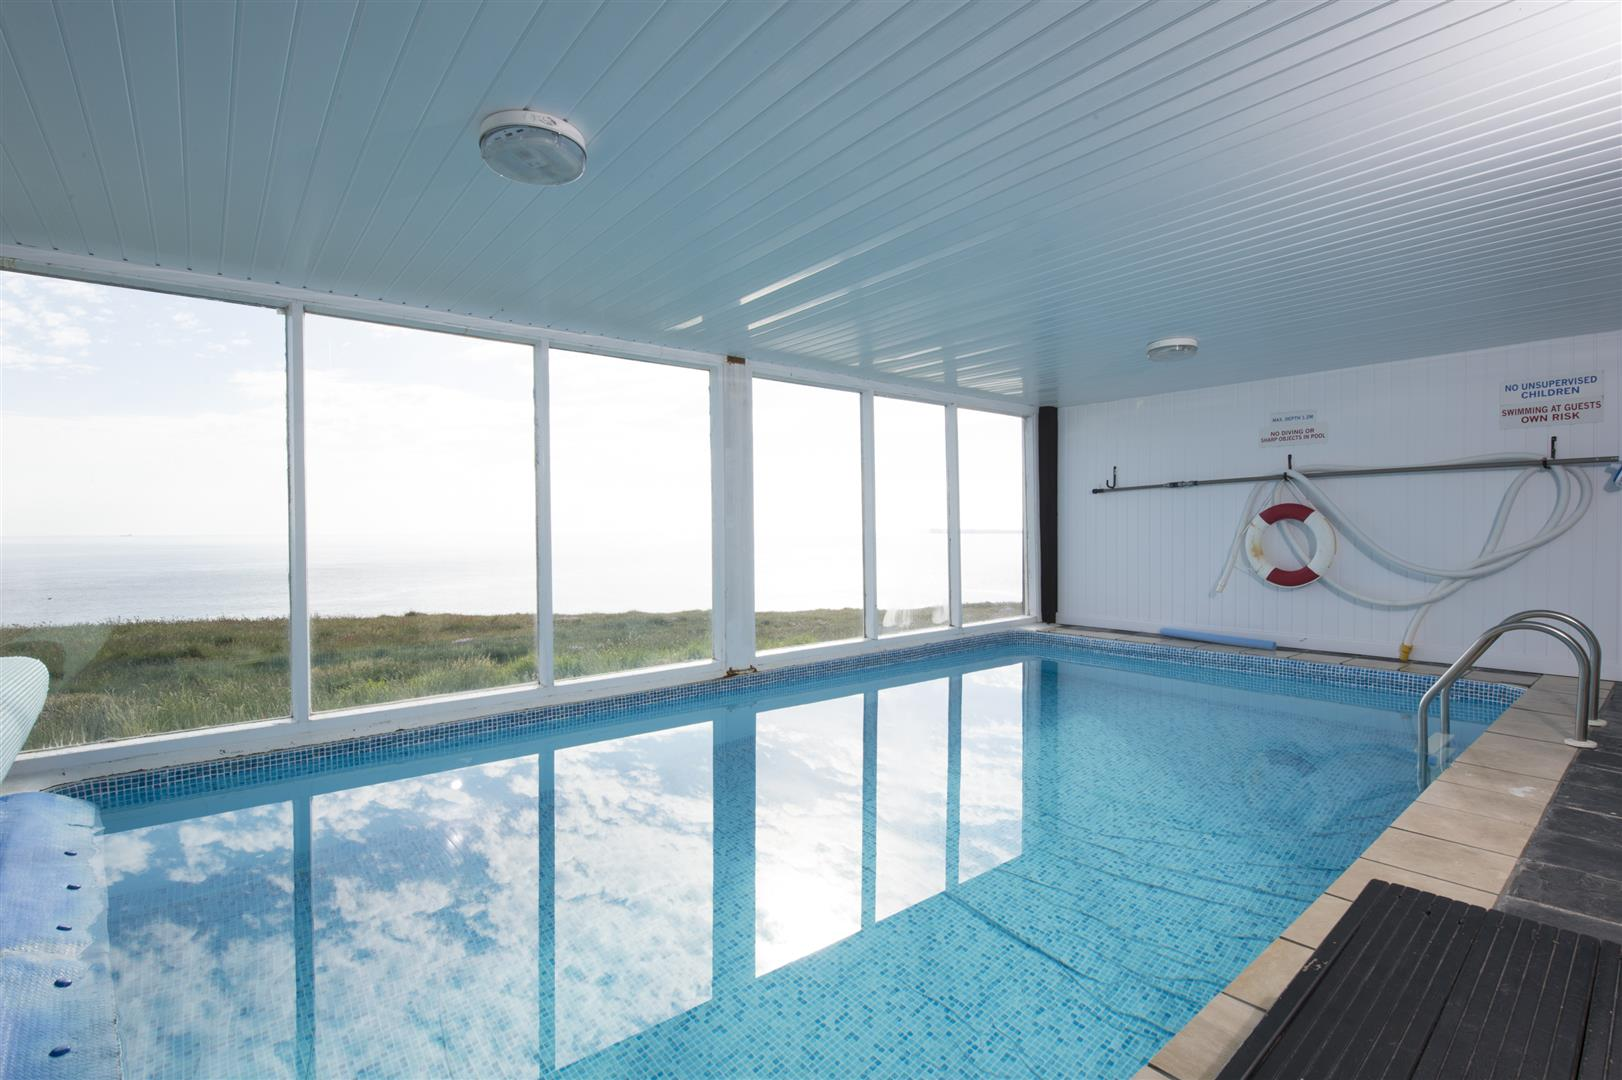 Swimming pool, sauna and gym room